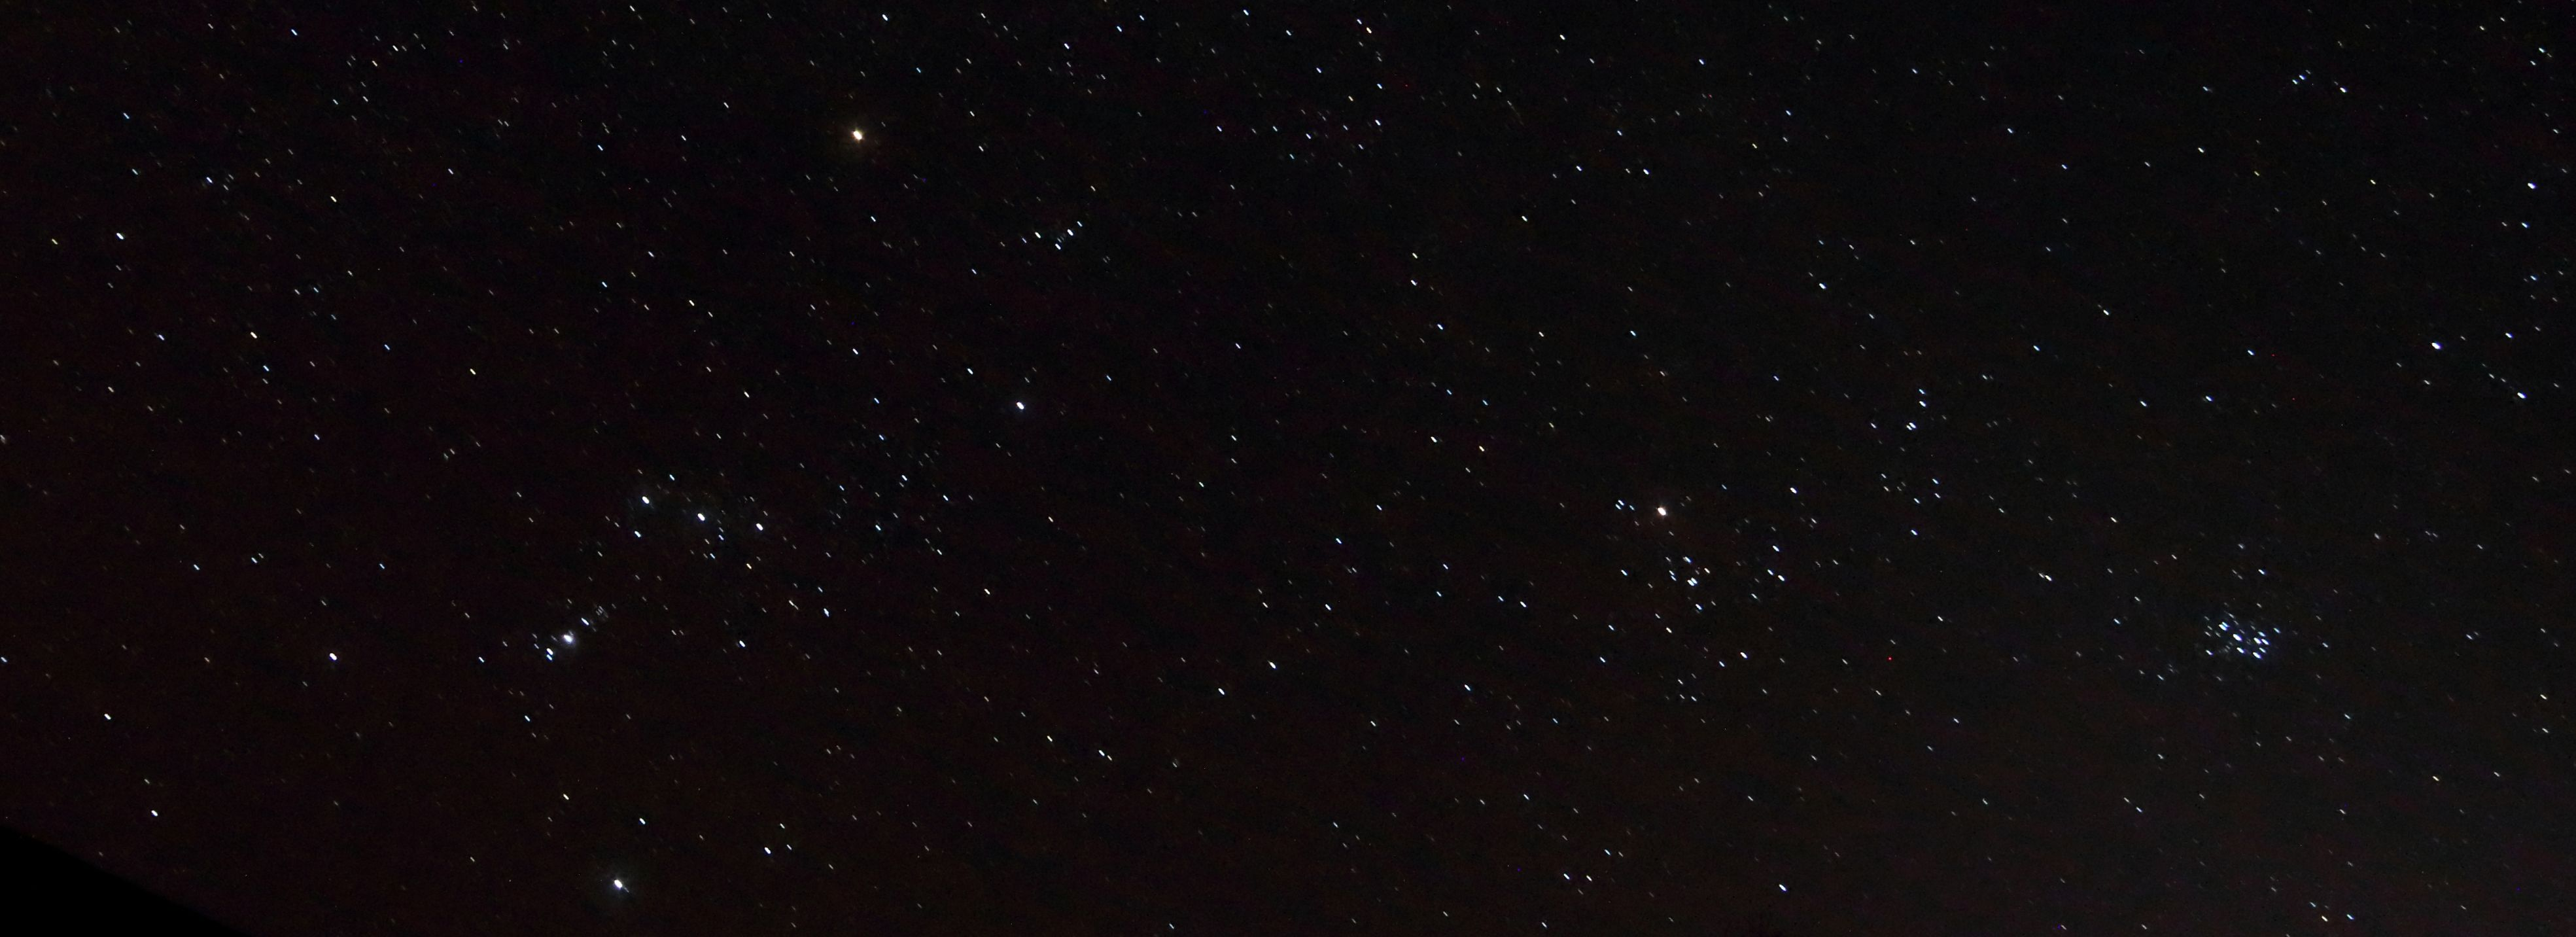 Orion, the Hyades and Pleiades